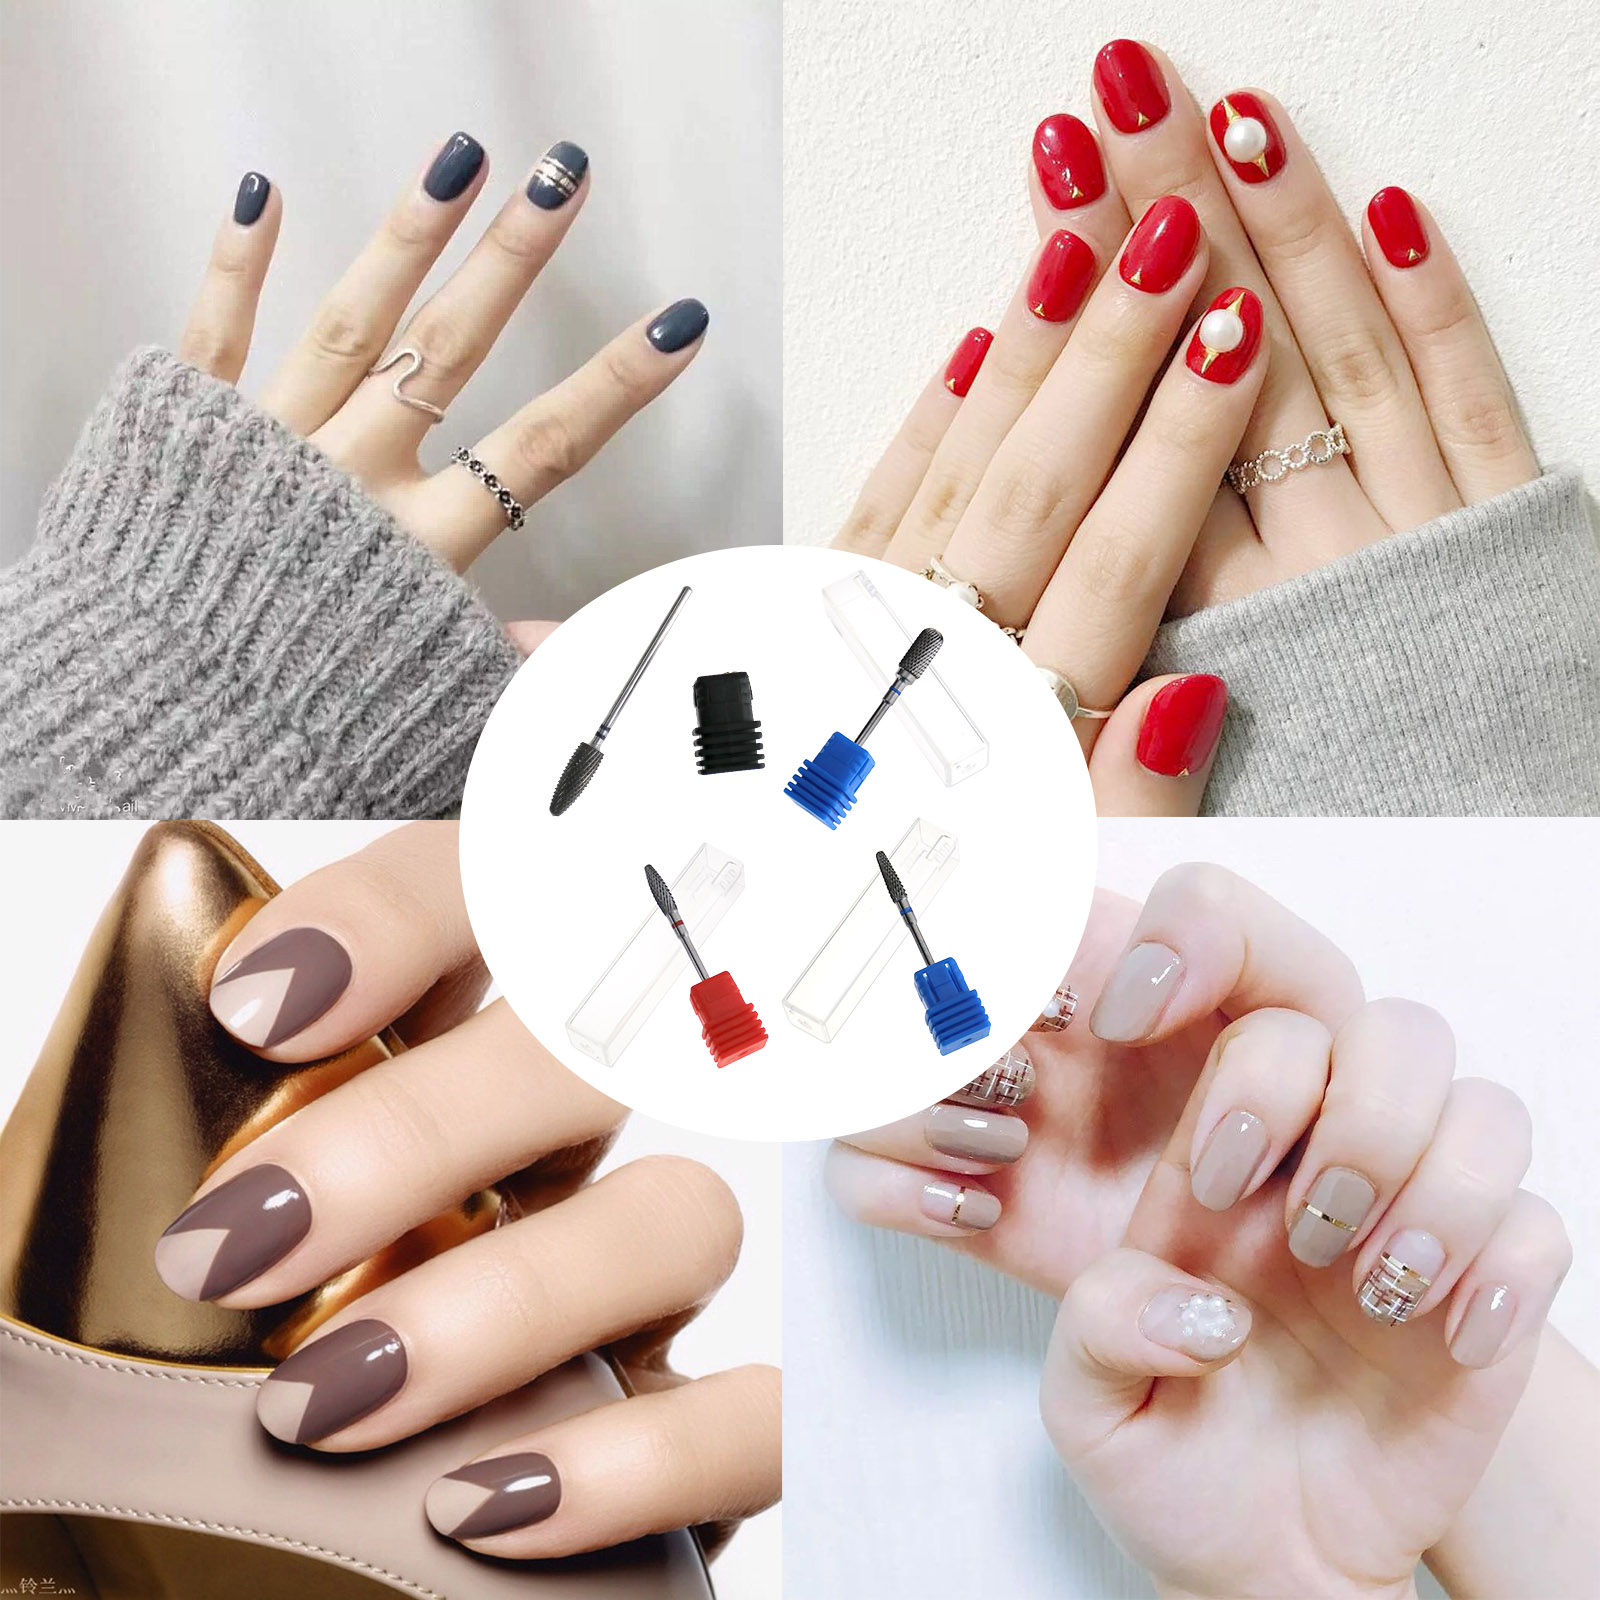 Manicure Tools And Equipment And Their Correct Use Splendid